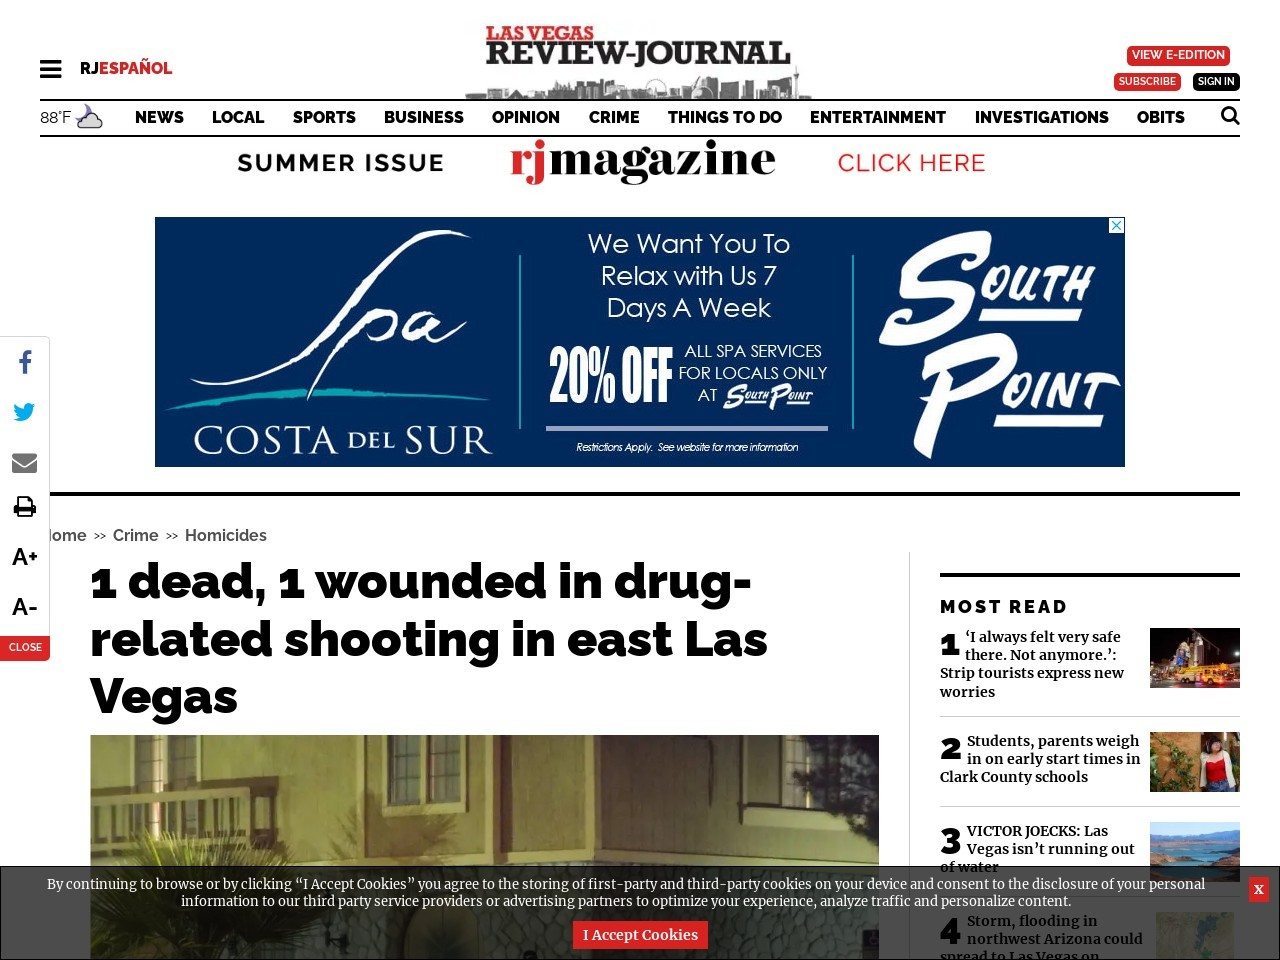 1 dead, 1 wounded in drug-related shooting in east Las Vegas